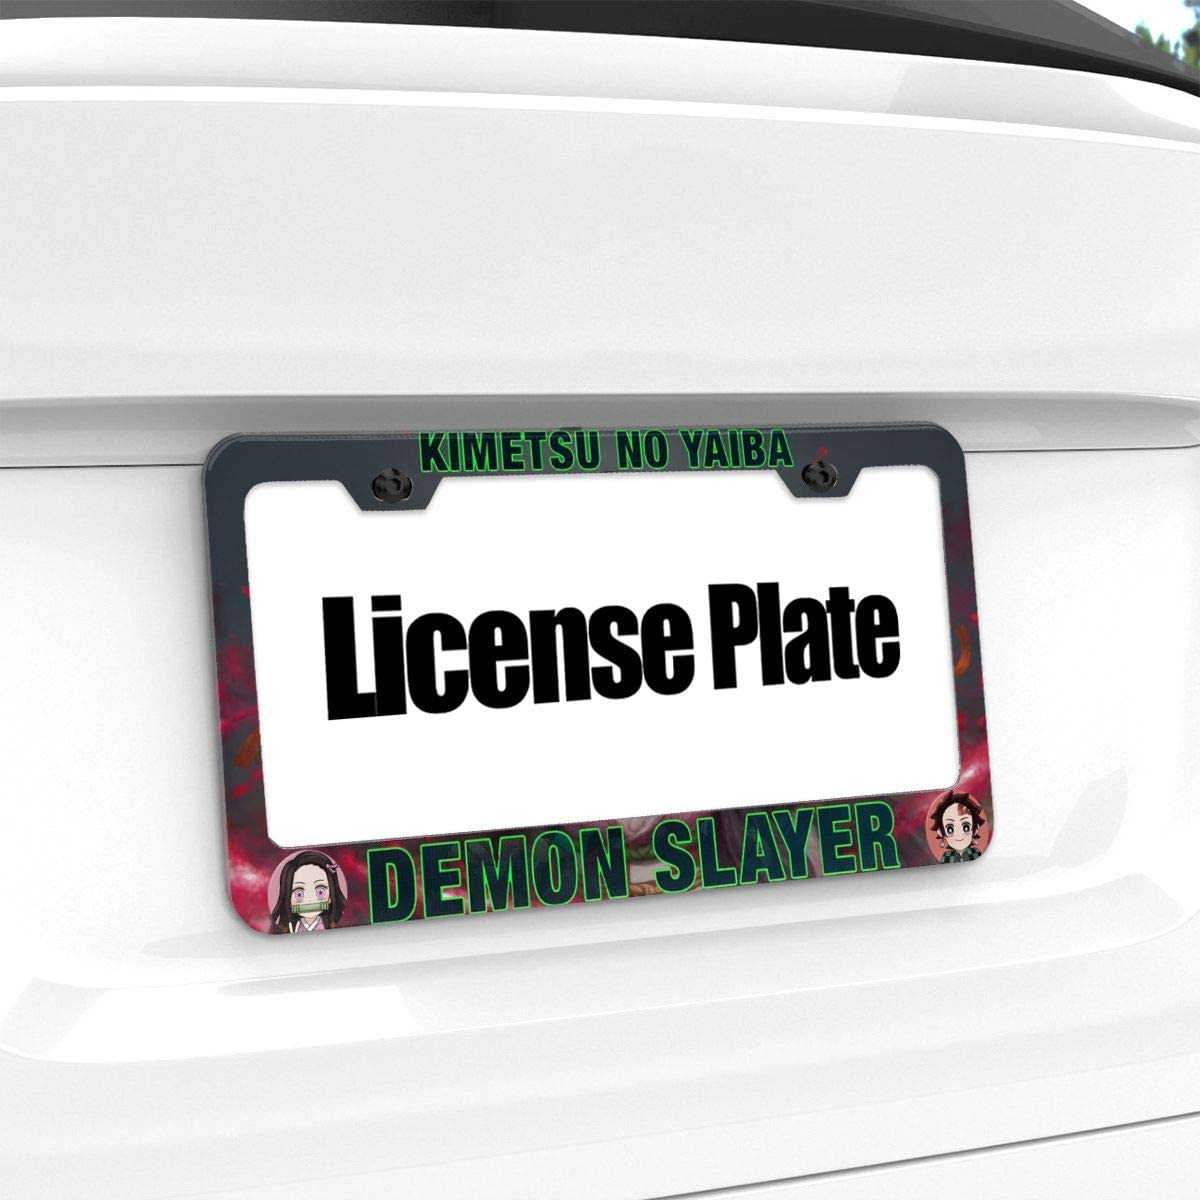 Demon Slayer Kimetsu No Yaiba 12 X 6 License Plate Frame Flat Hole